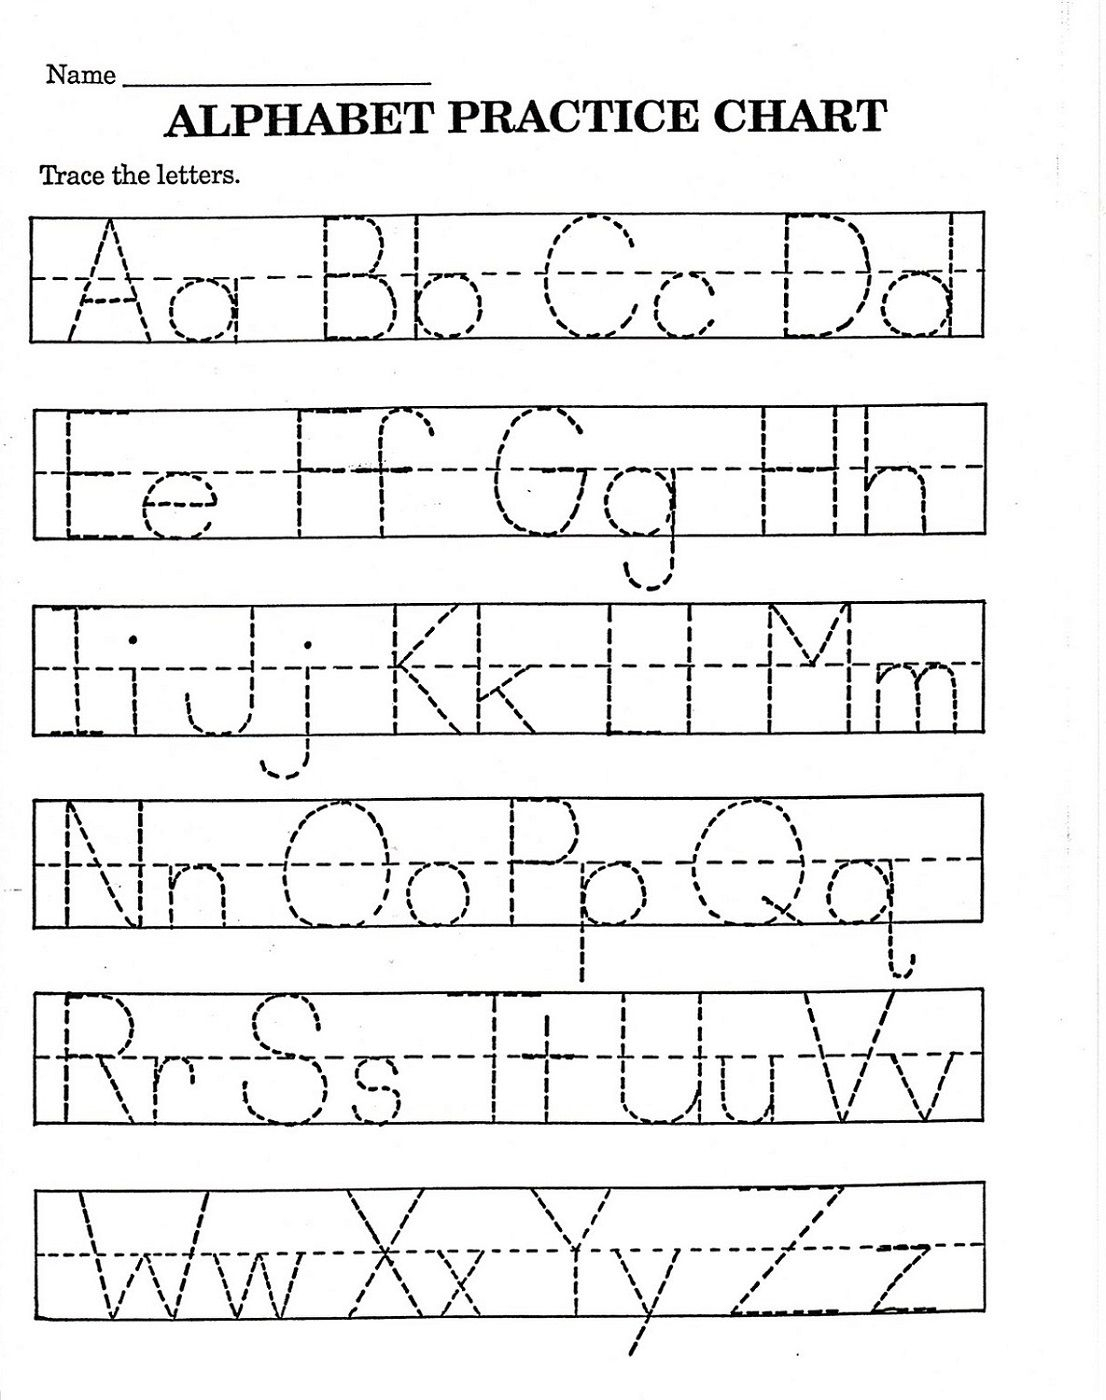 Trace Letter Worksheets Free | Printable Alphabet Worksheets inside Alphabet Tracing Chart